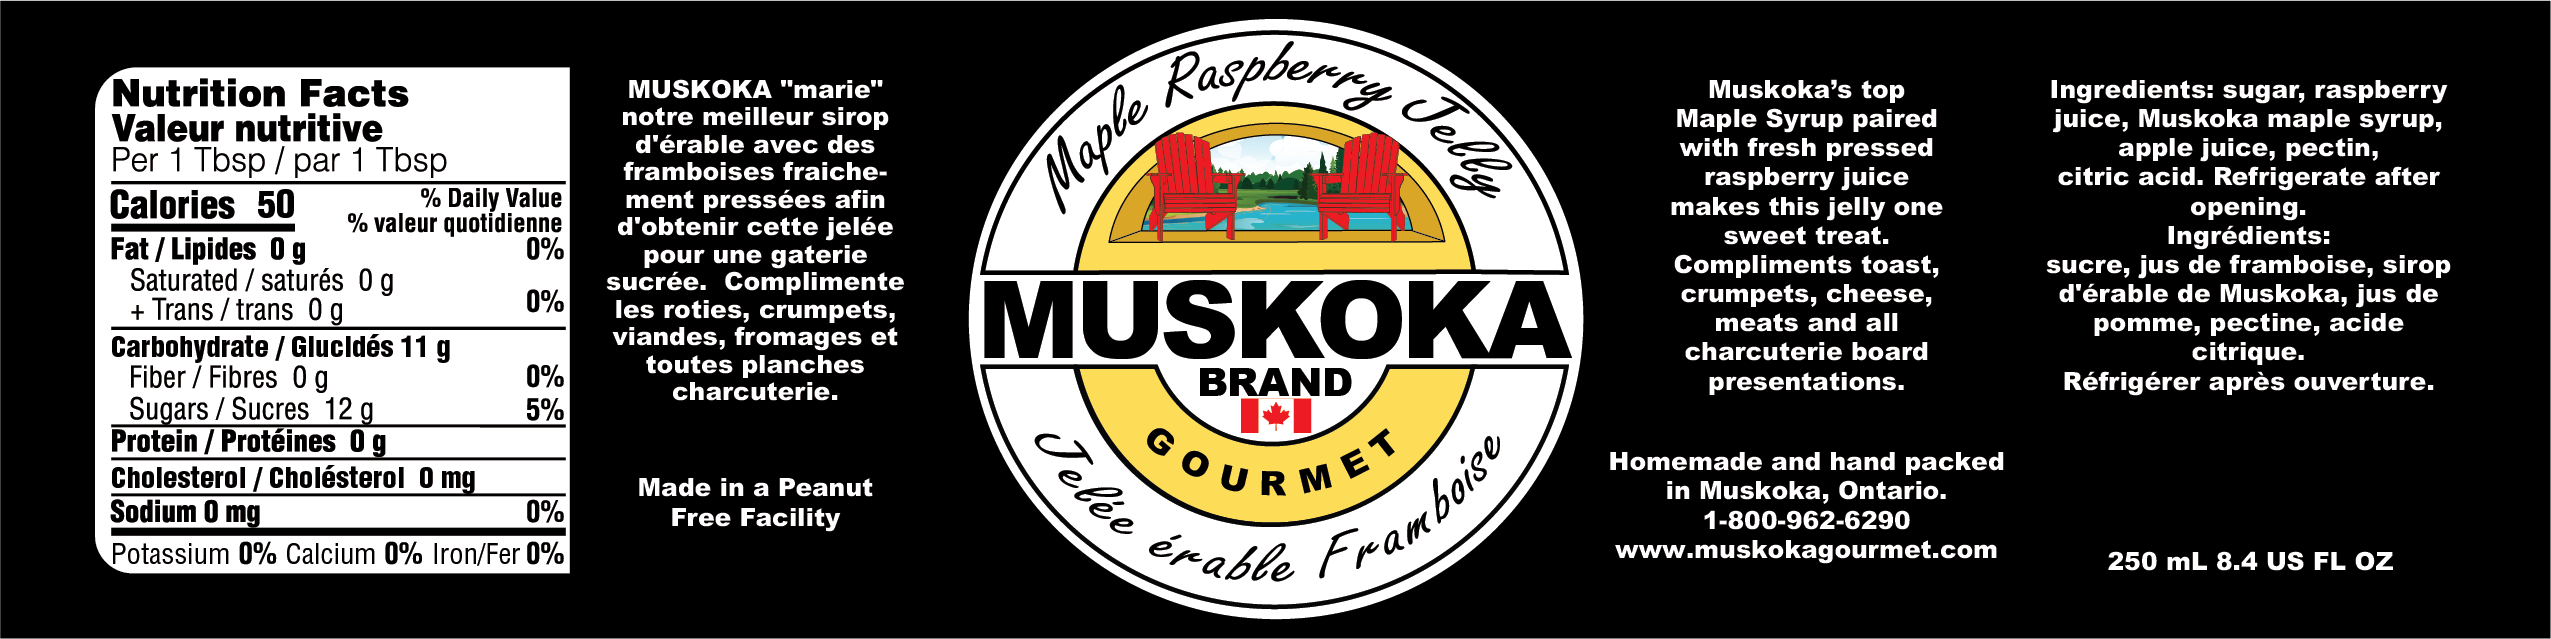 Muskoka maple and raspberry jelly nutritional and information.